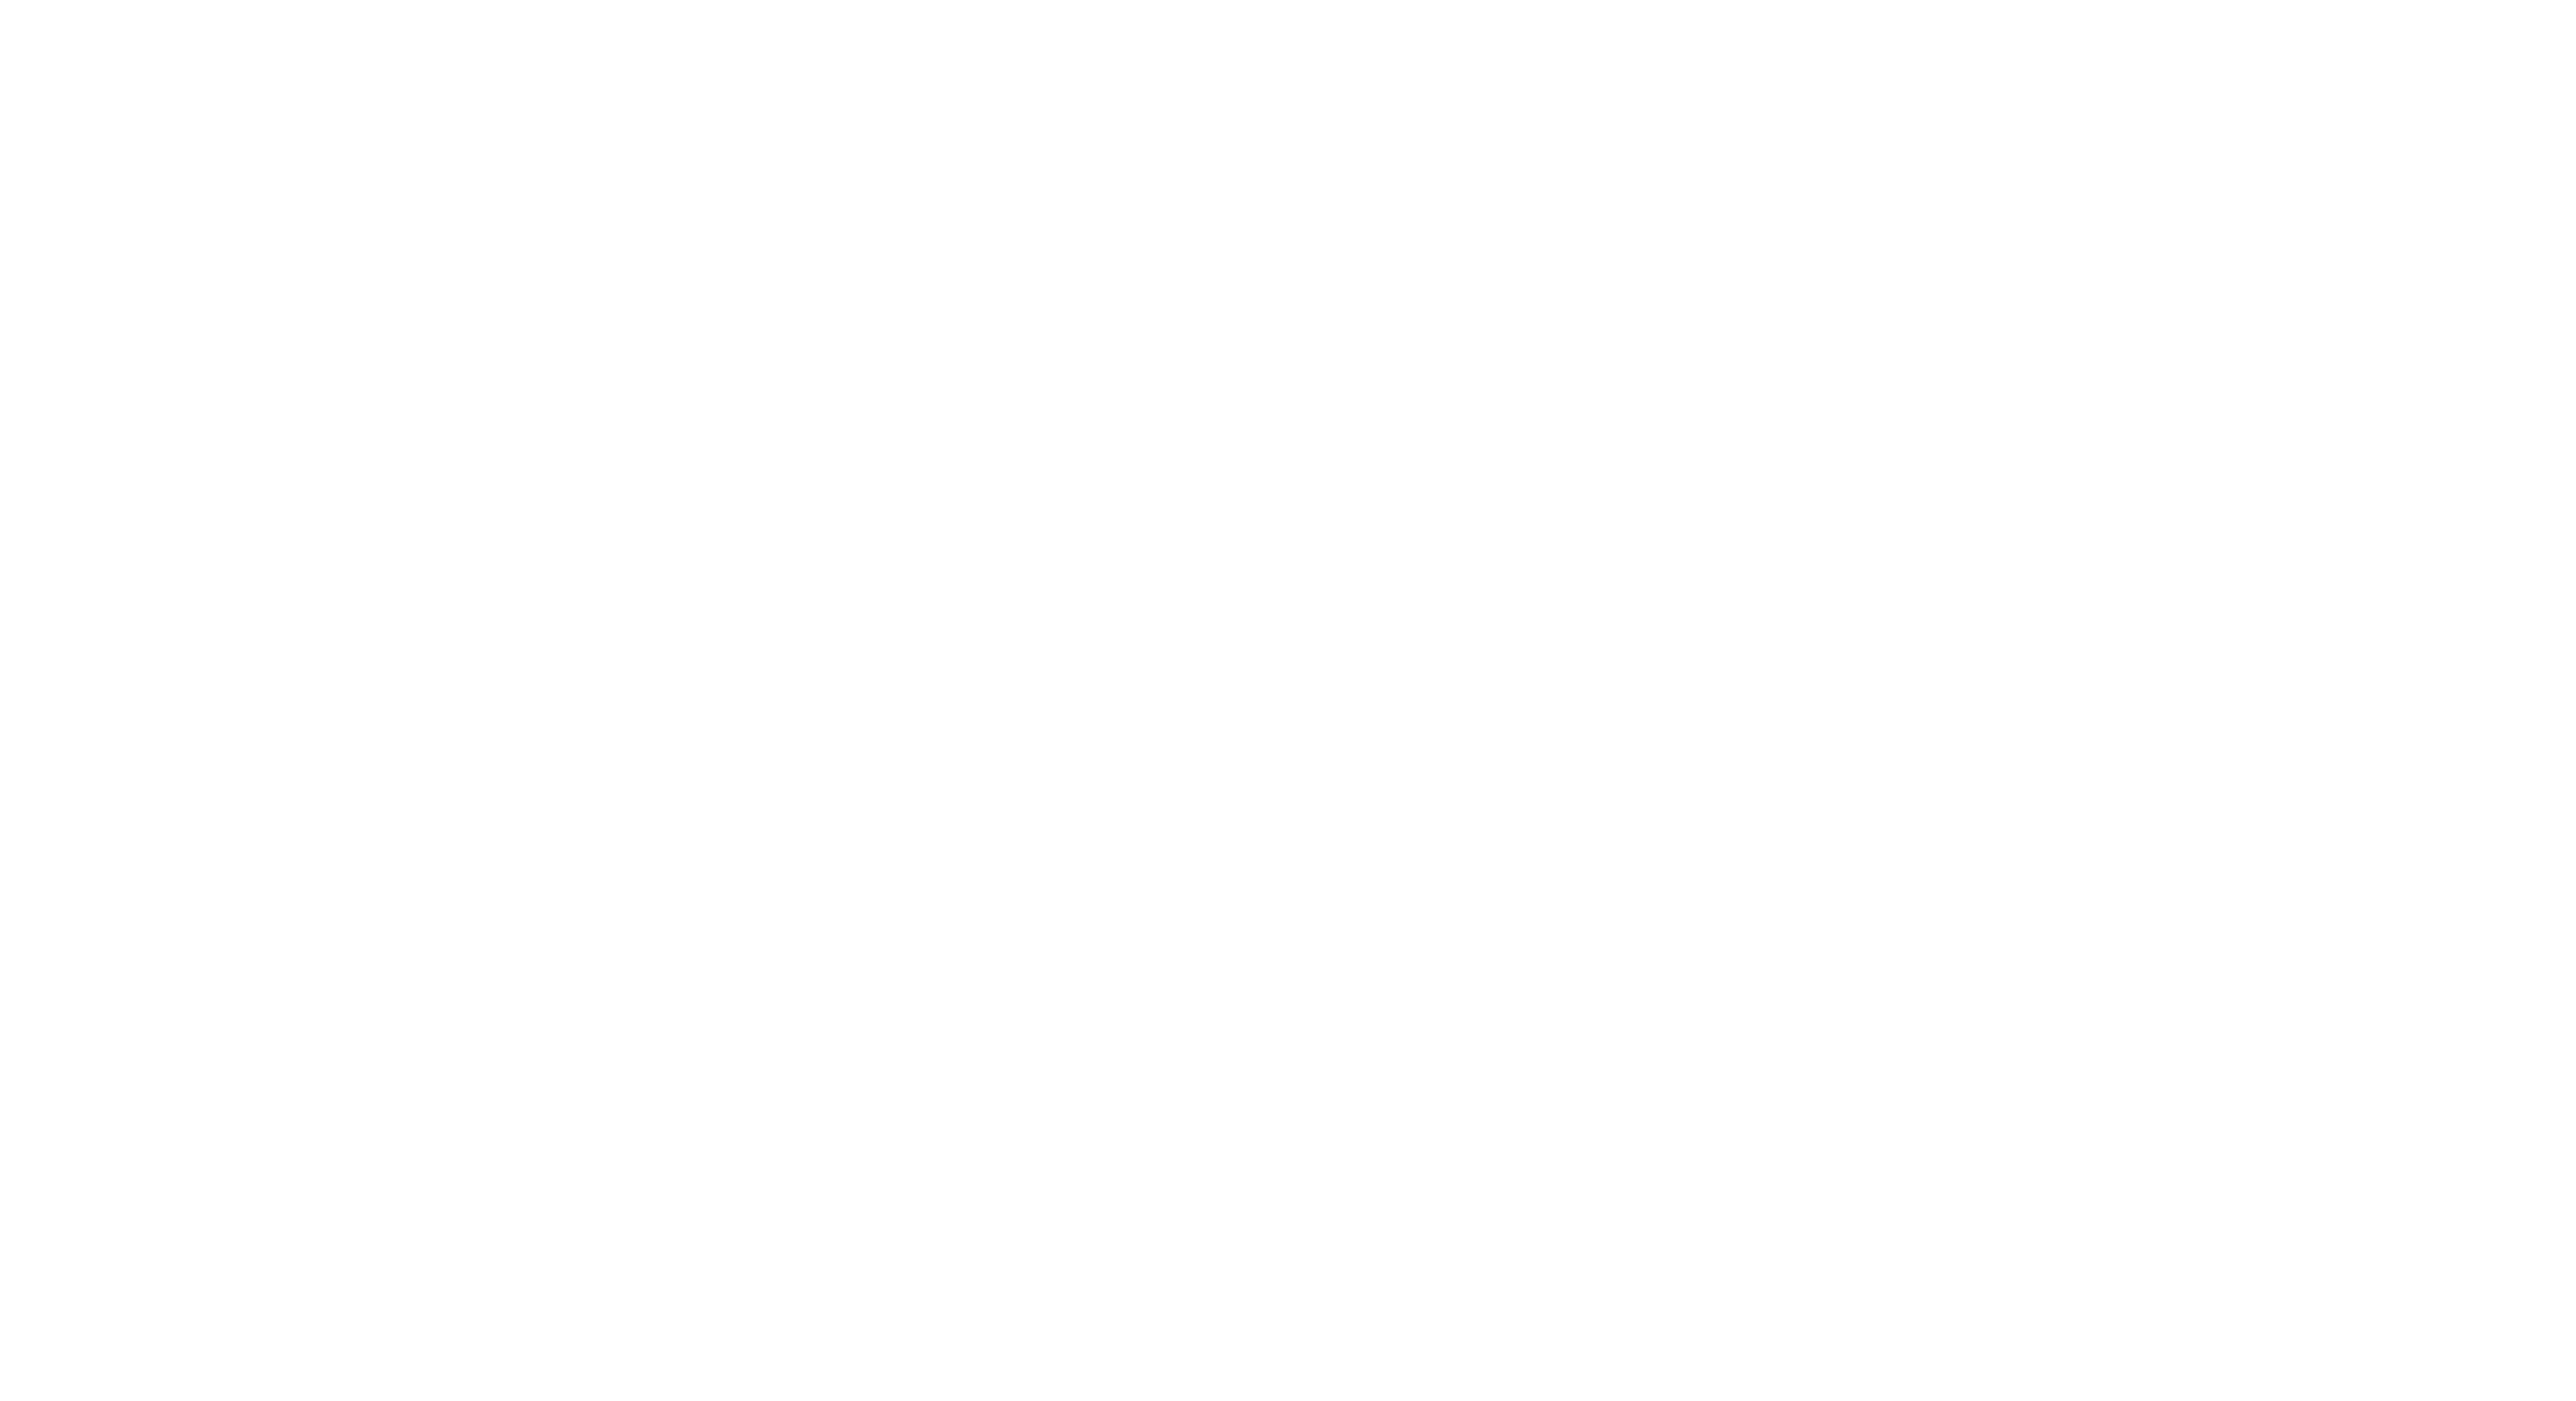 Hospital Association of South Africa